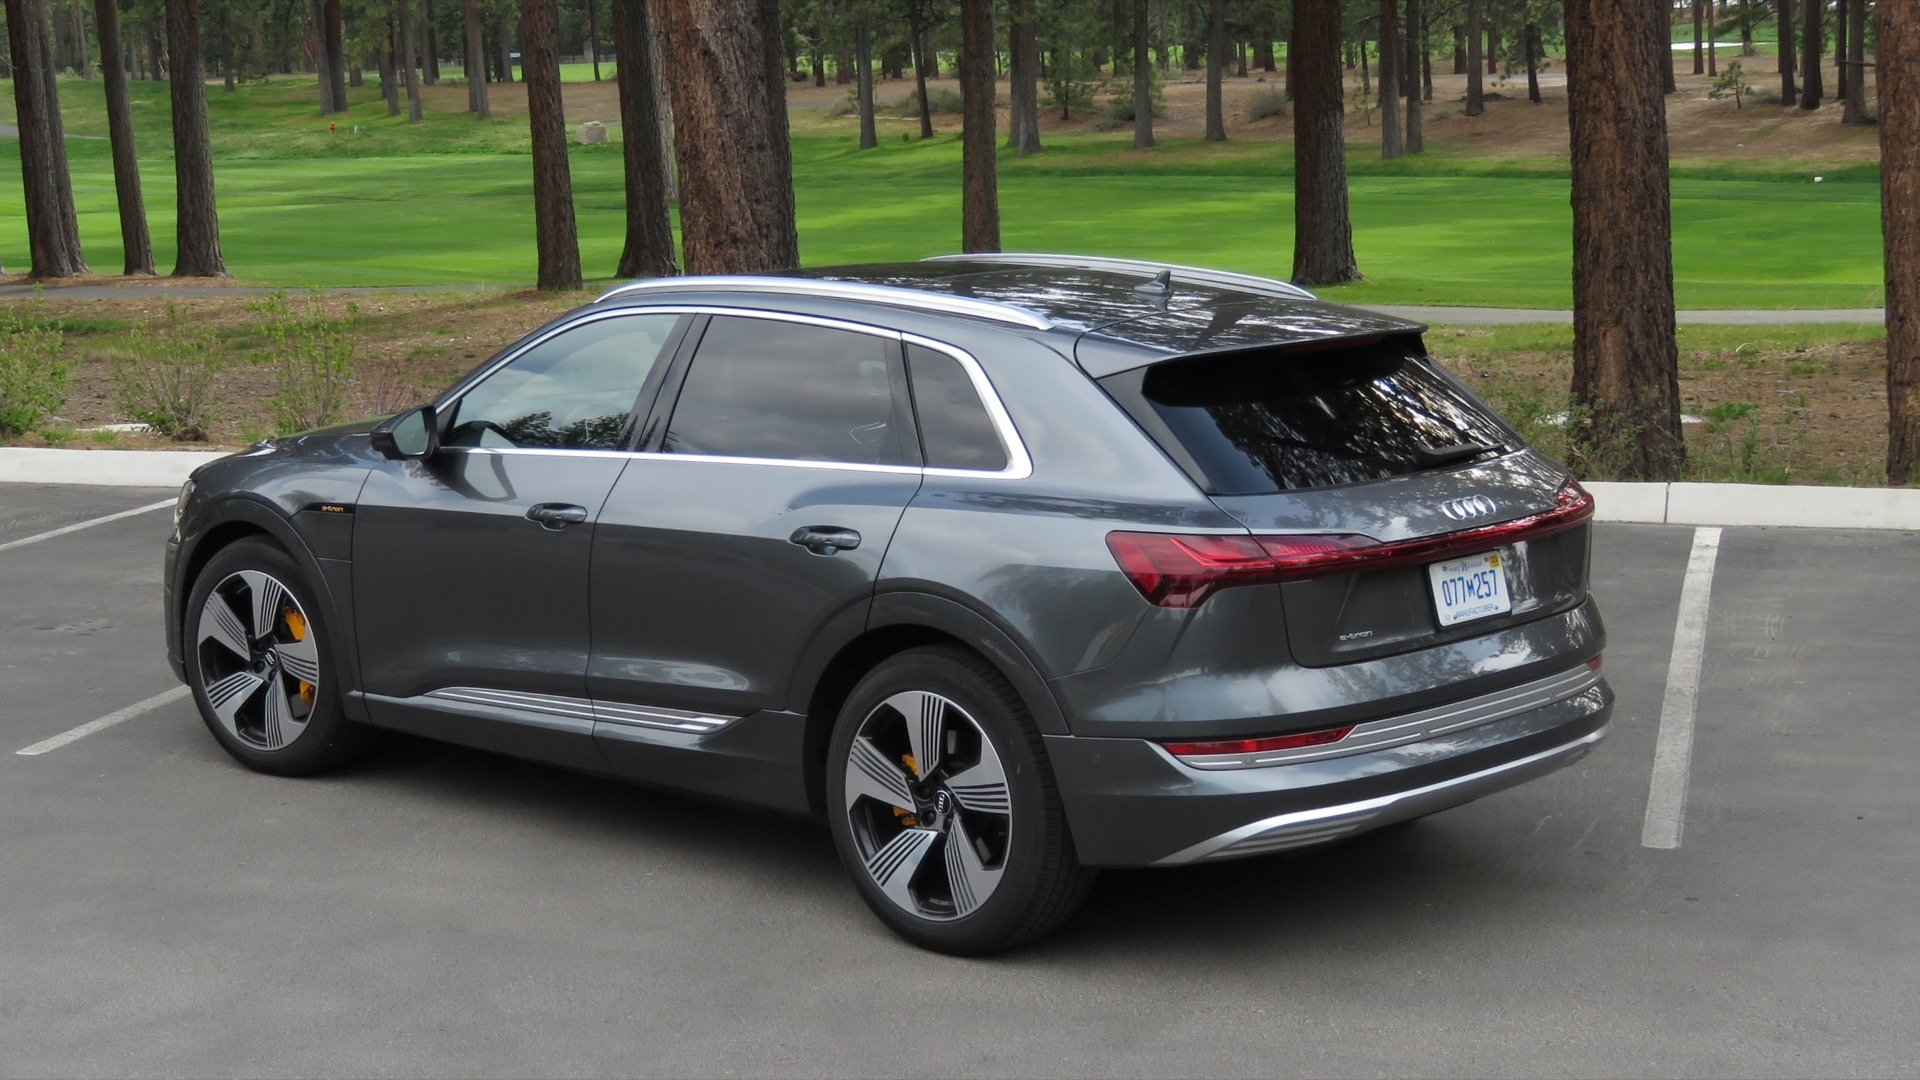 2019 Audi E-tron  -  first drive report  -  Calirornia, May 2019